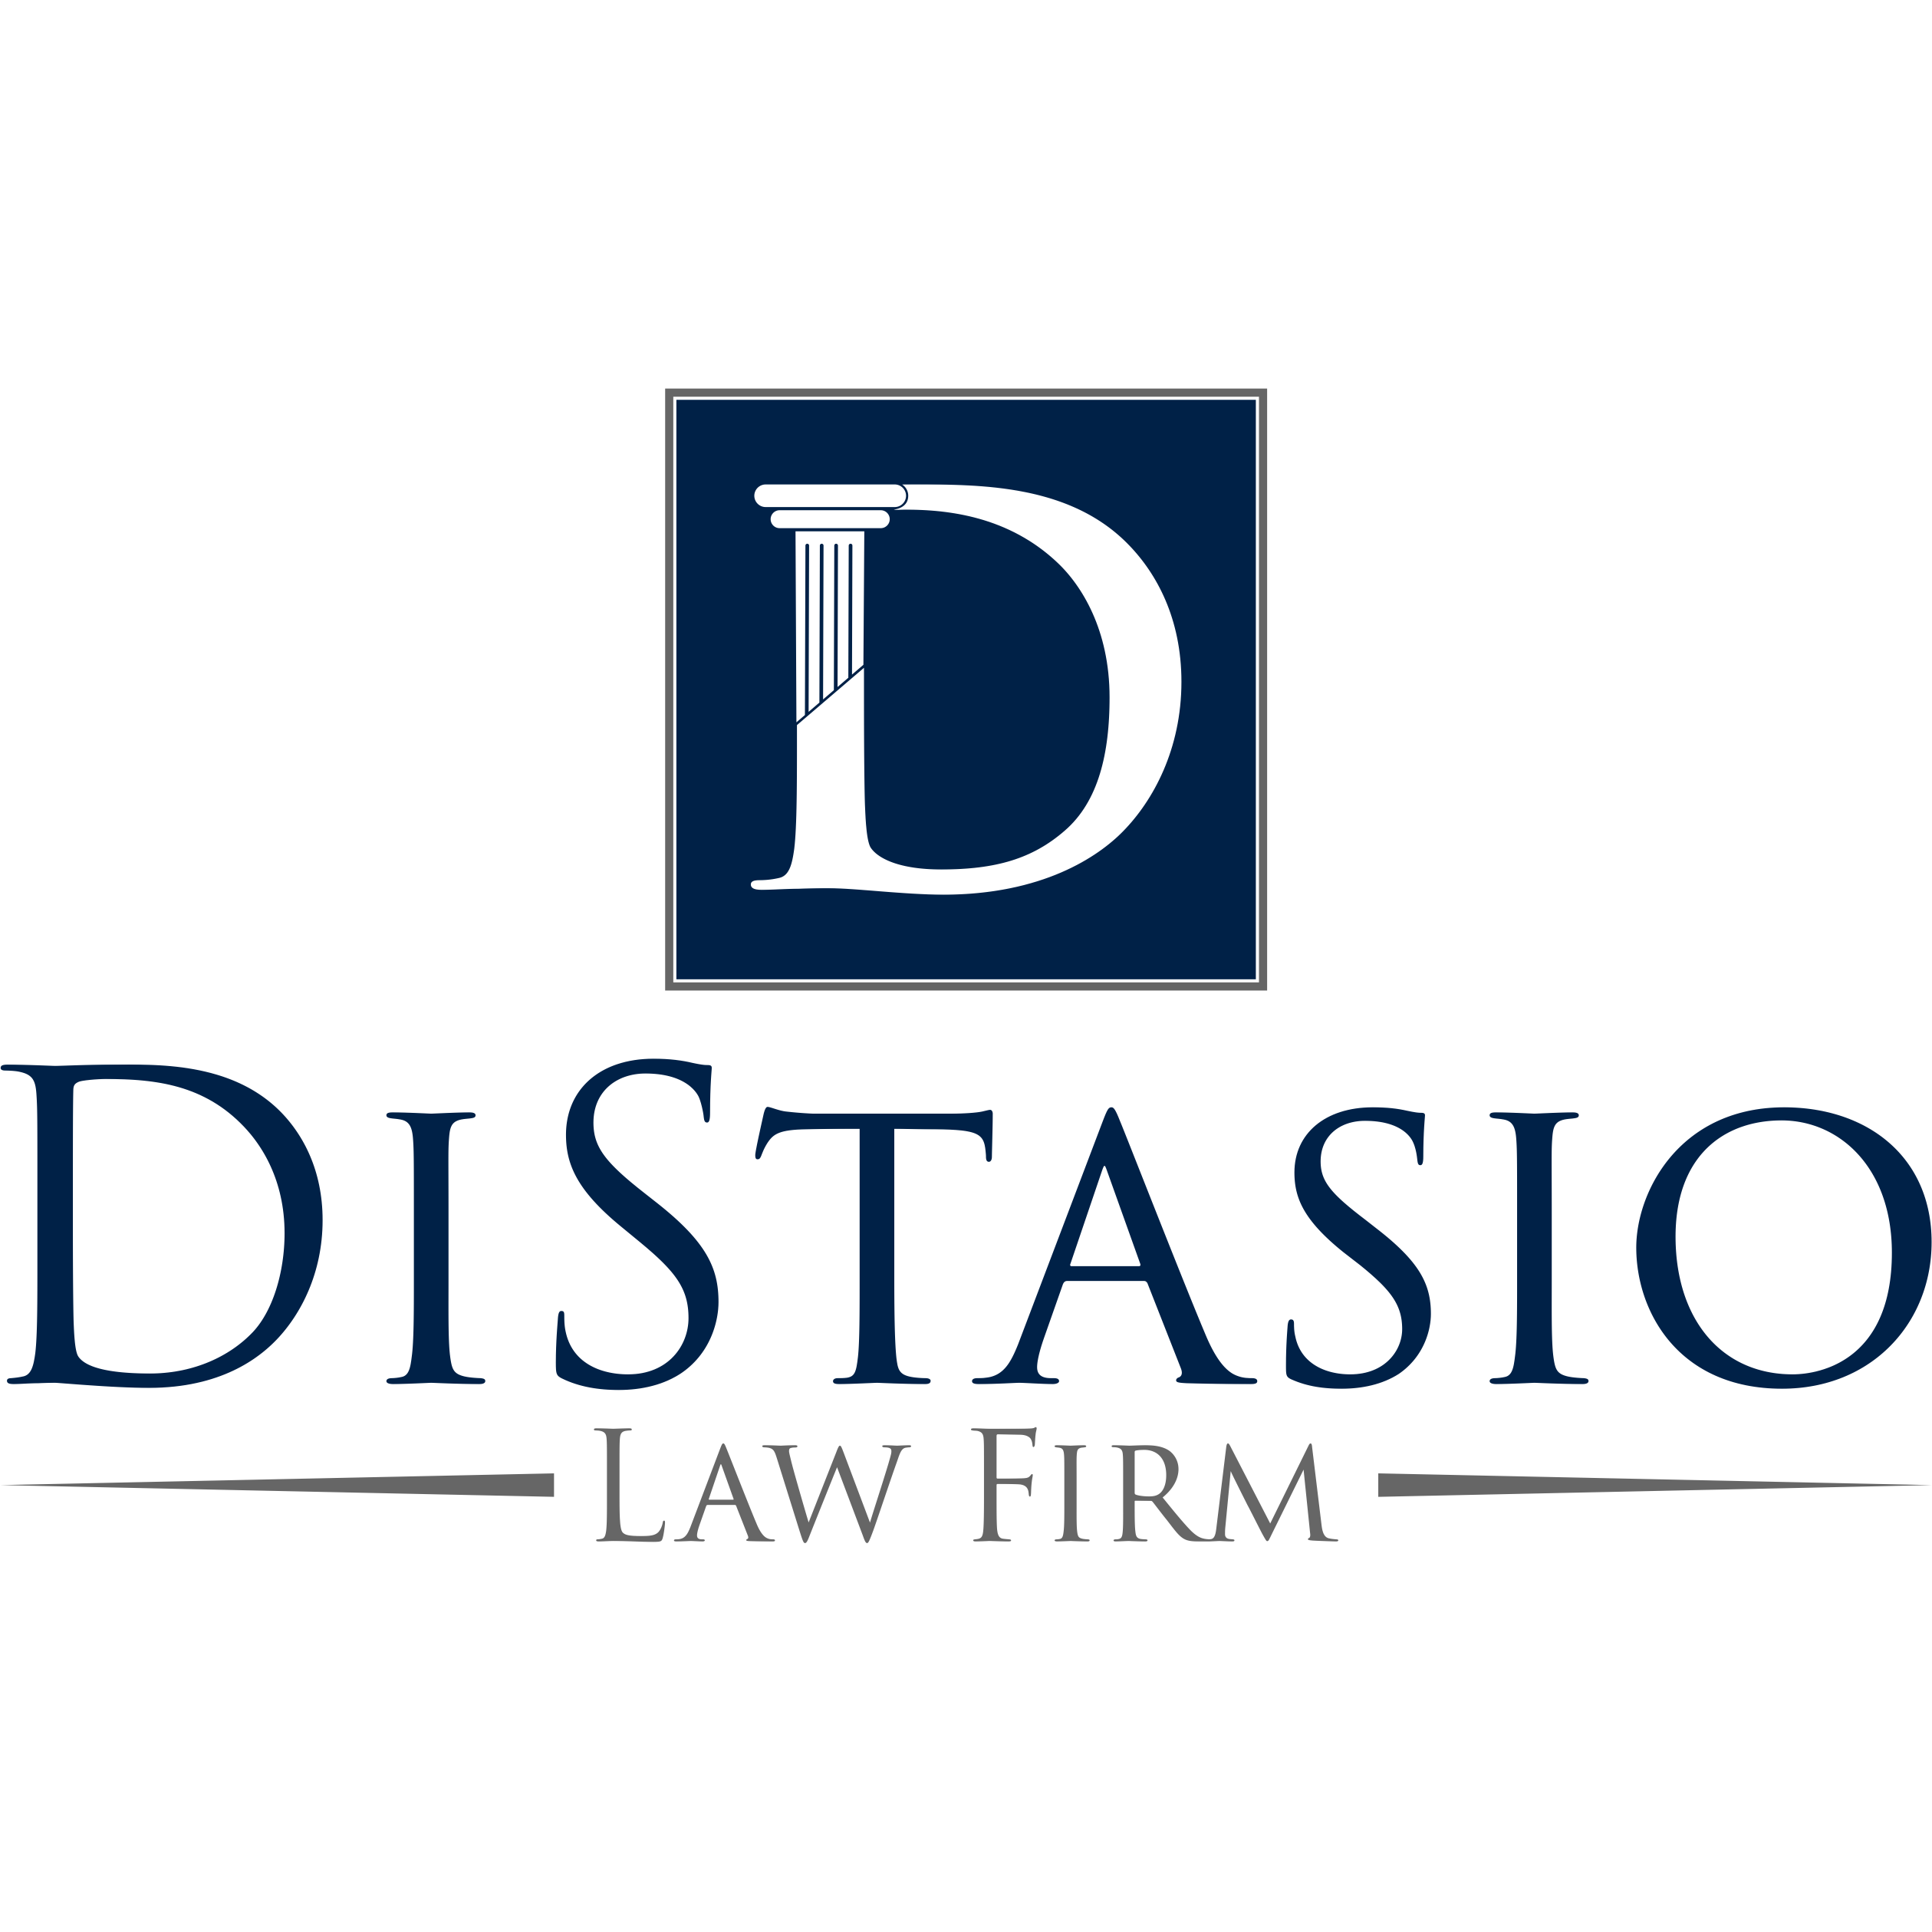 Distasio Law Firm image 1